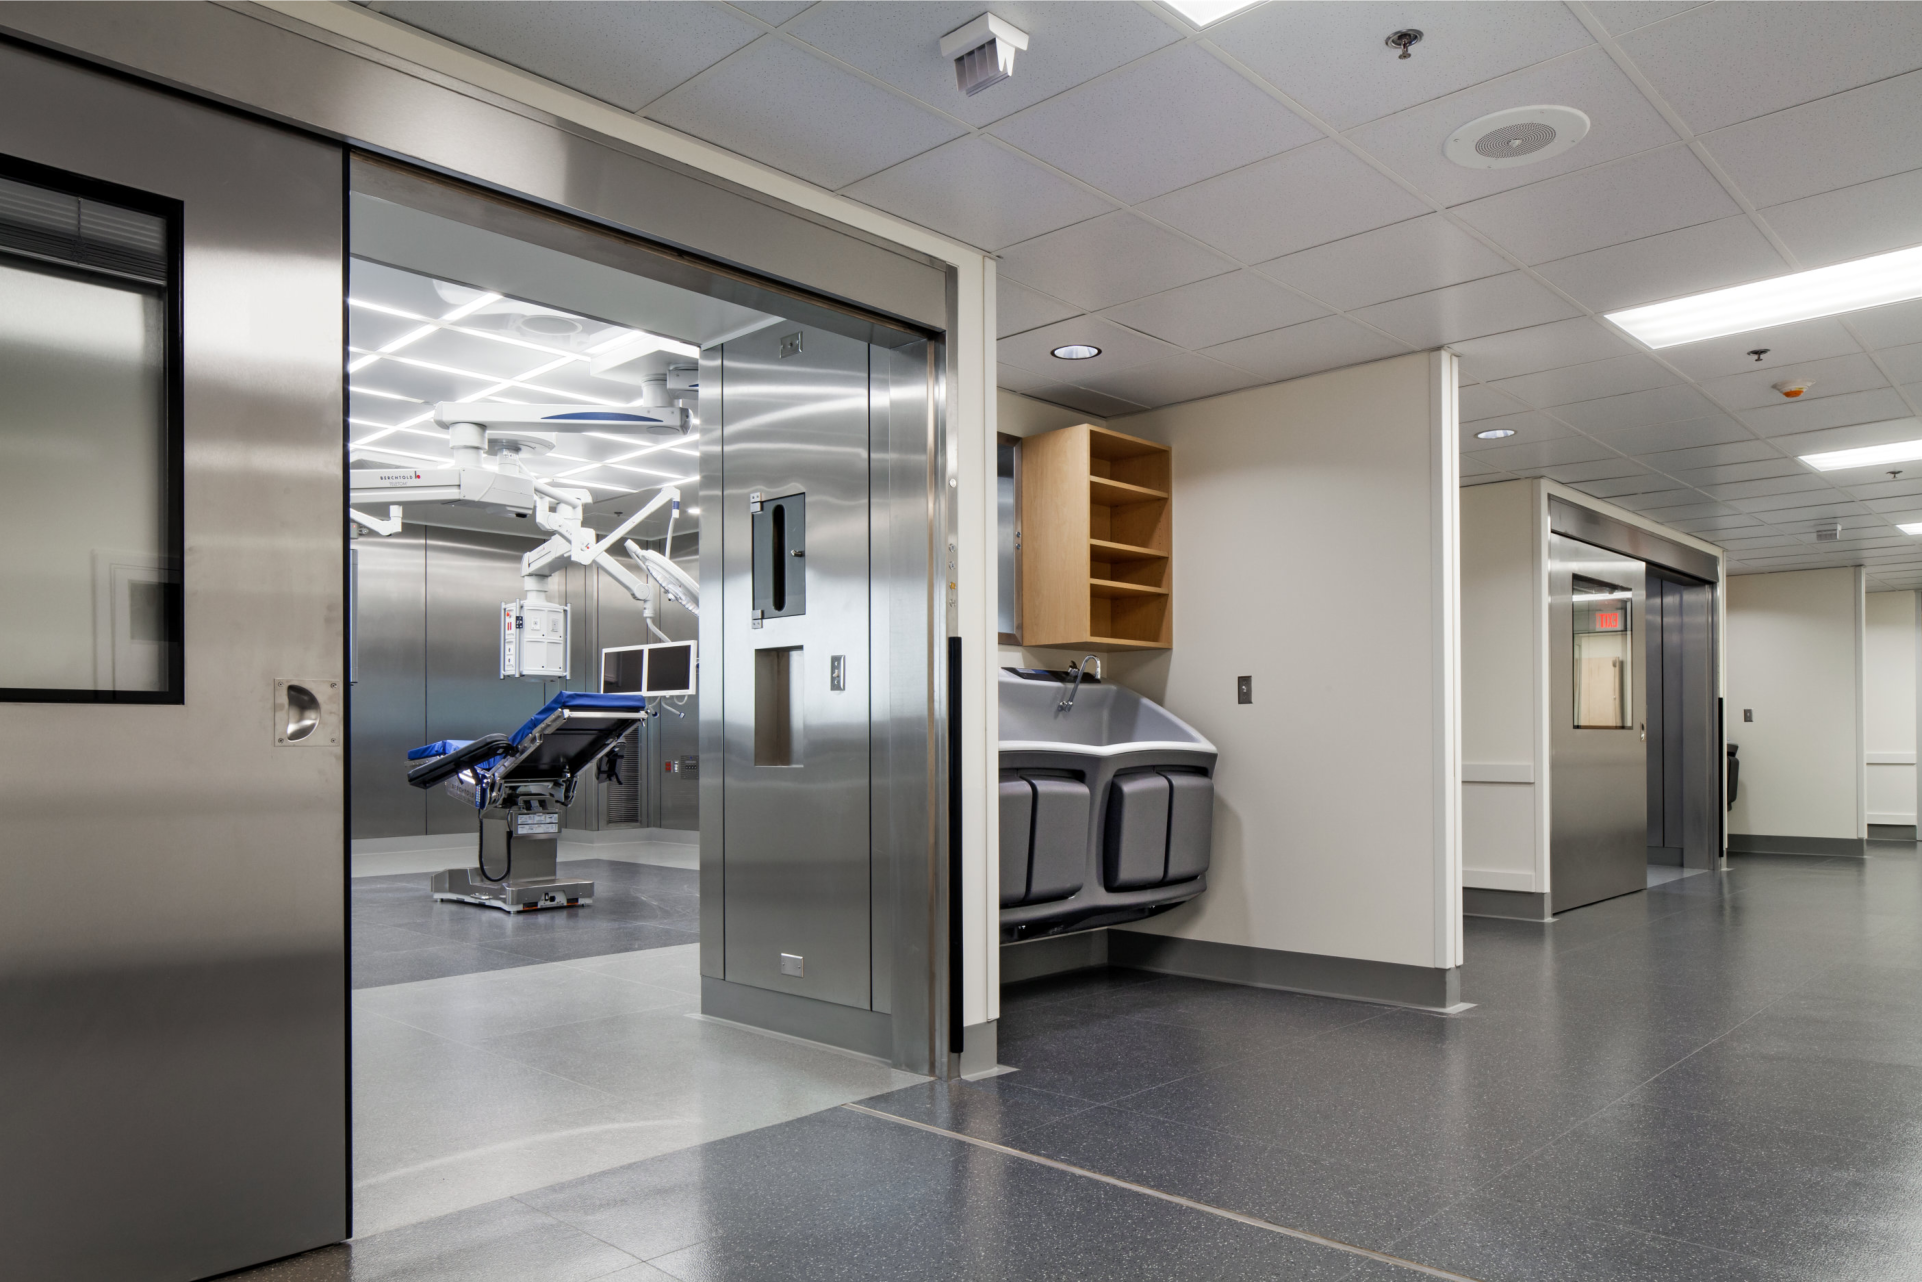 mfPHD Operating Room Doors at Yale New Haven Hospital